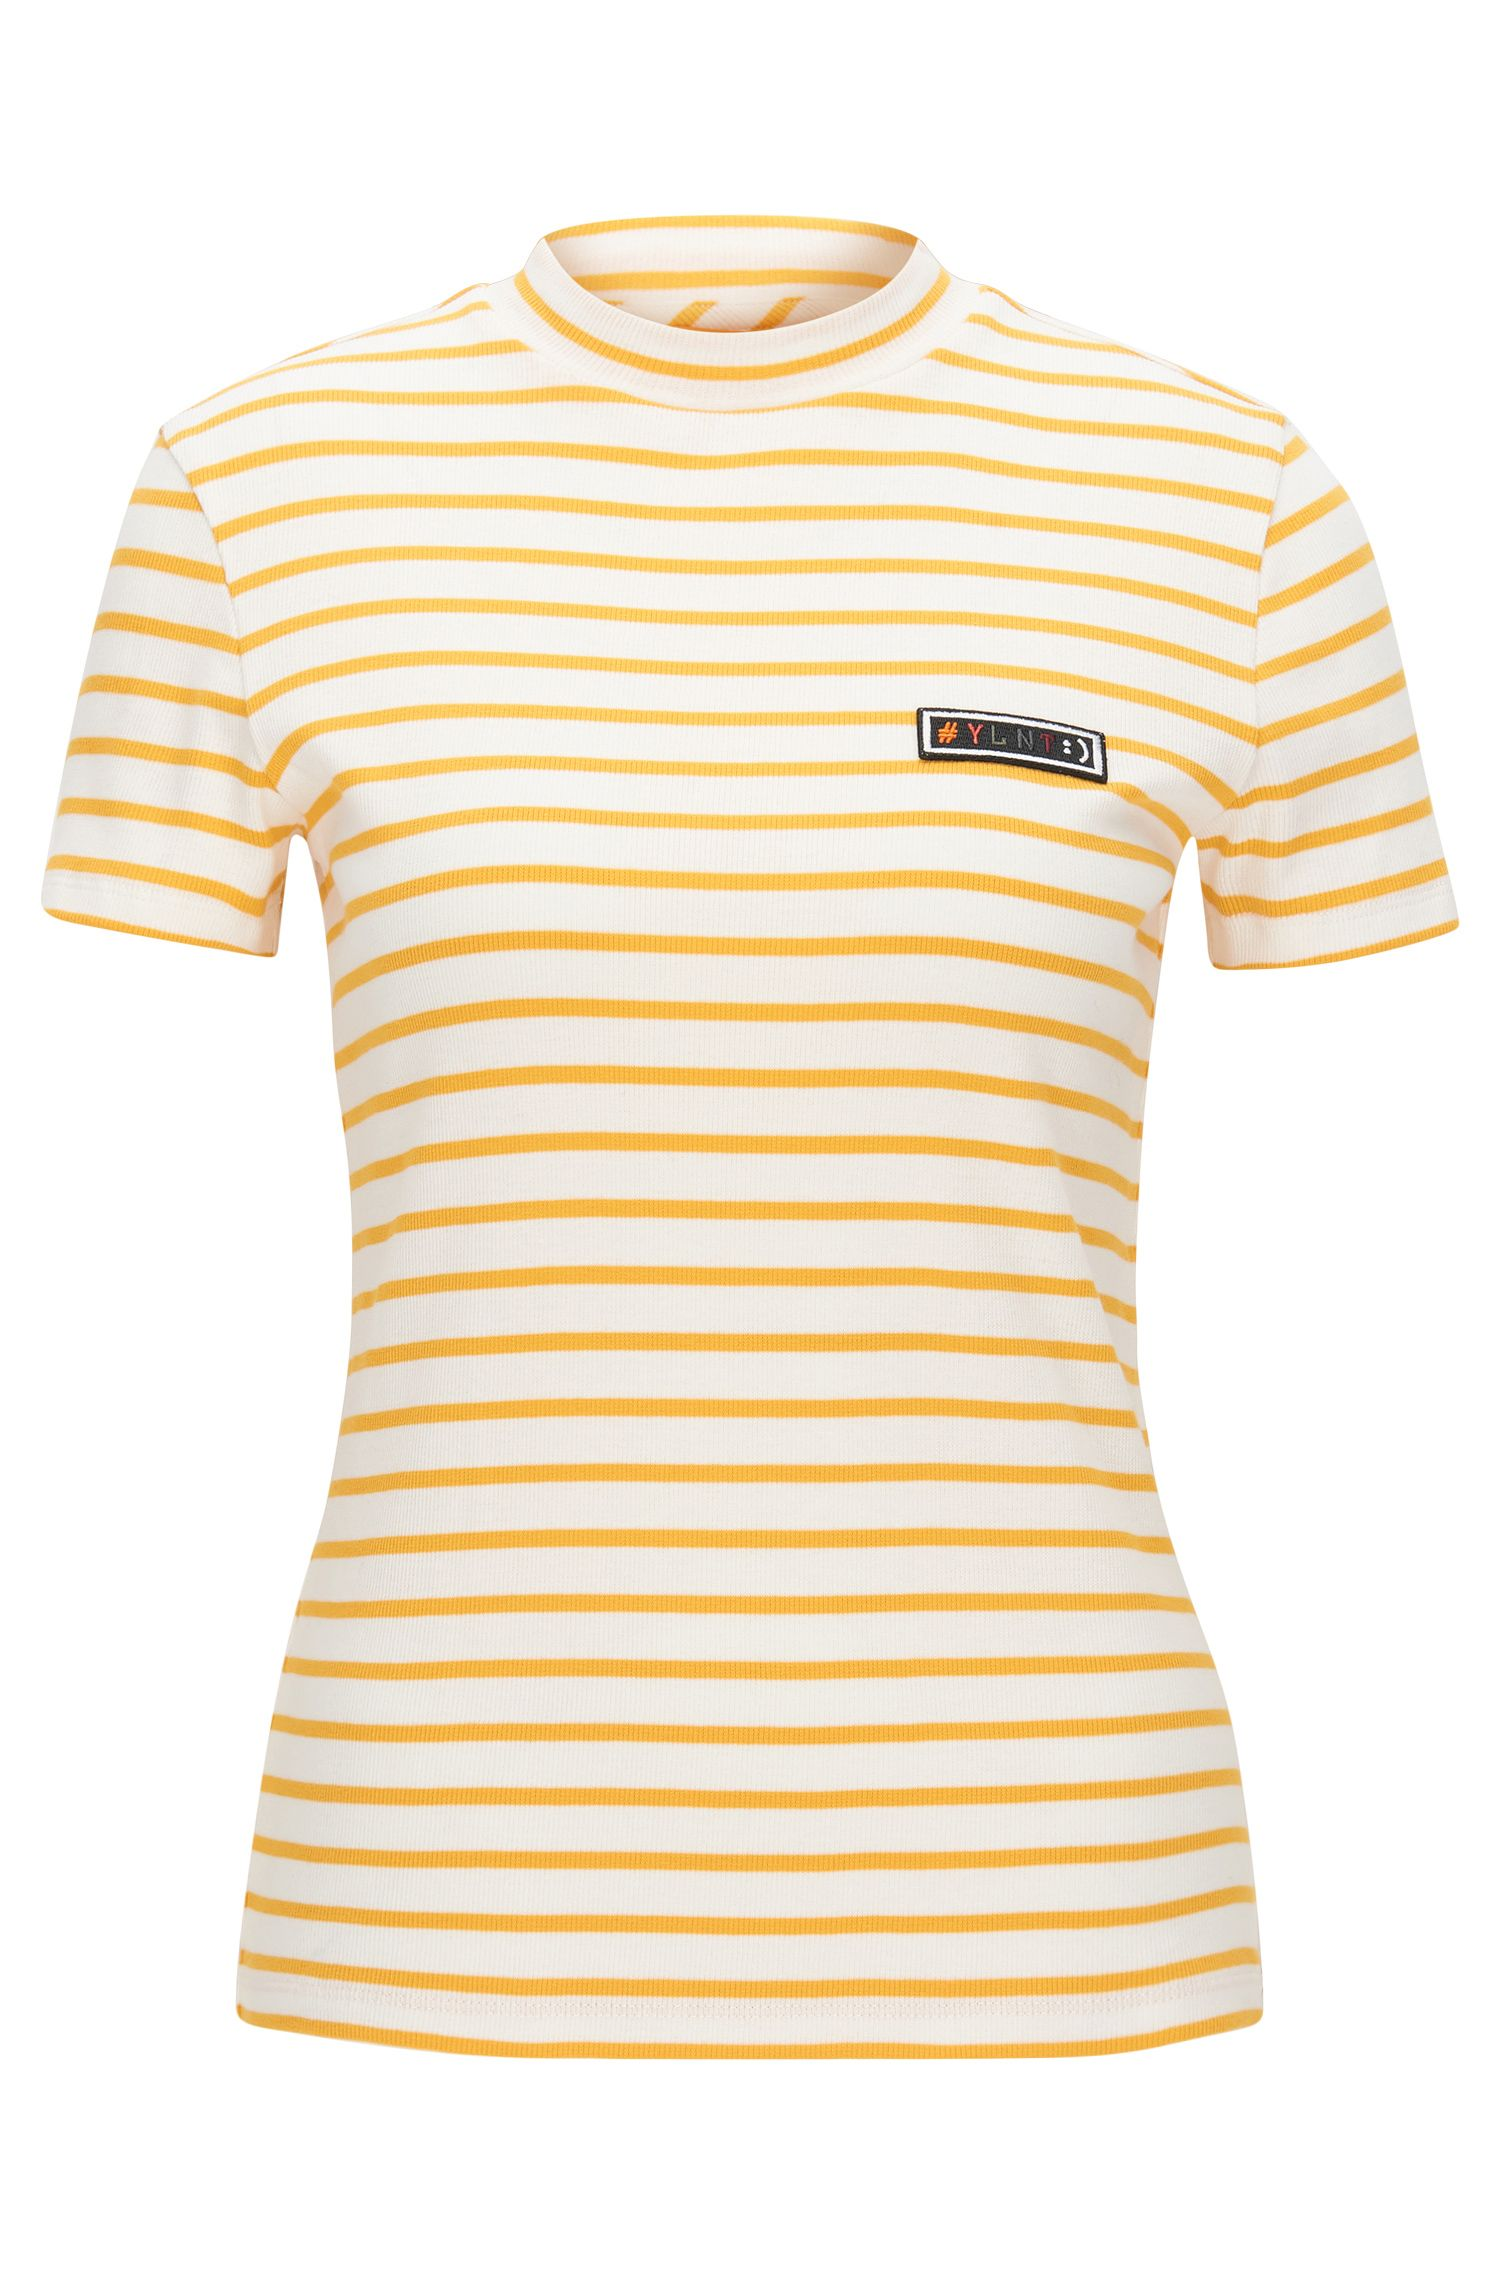 Slim-fit T-shirt in striped rib jersey